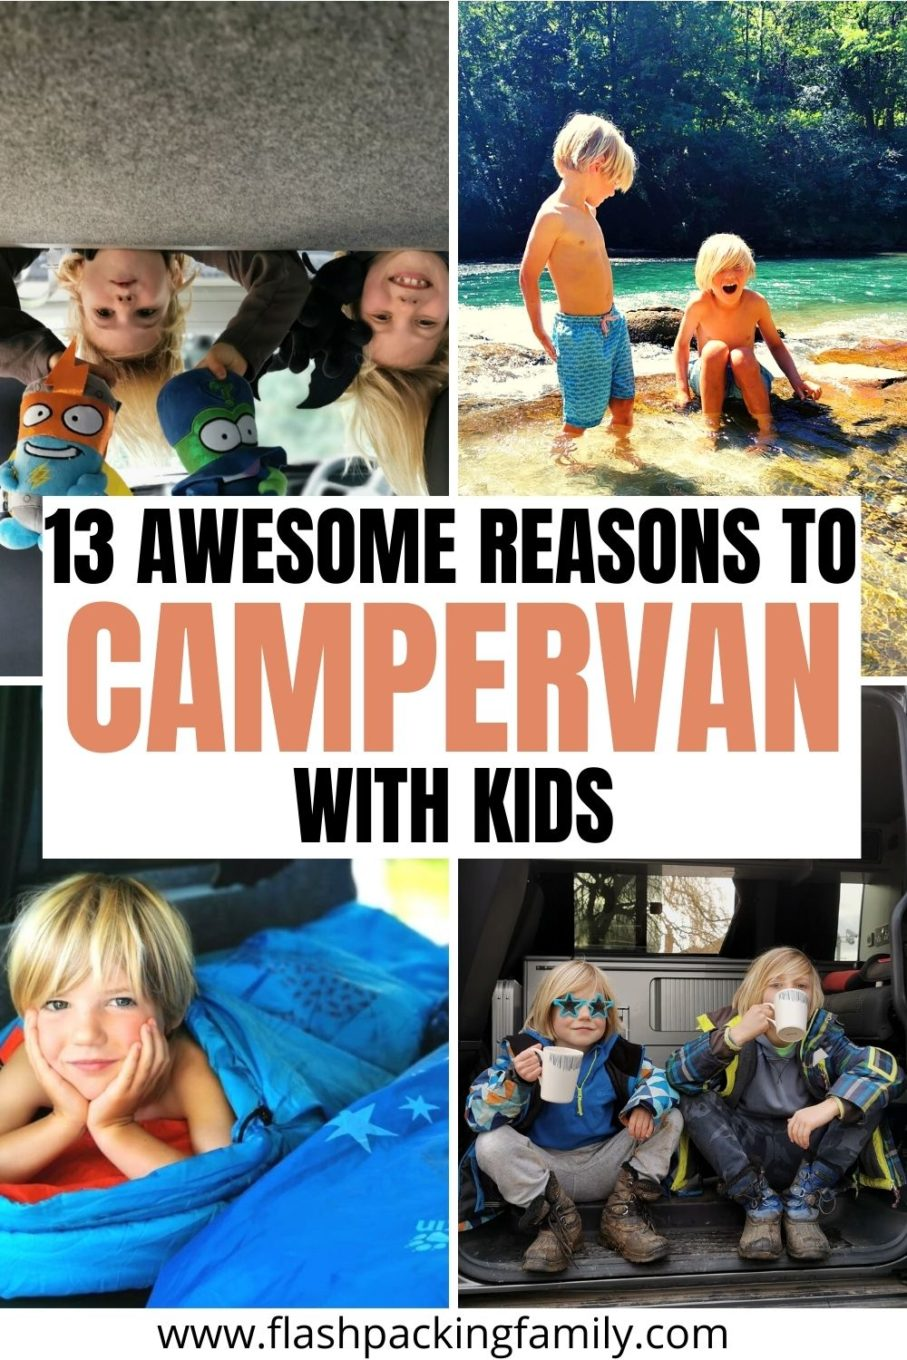 13 Awesome Reasons to Campervan with Kids.